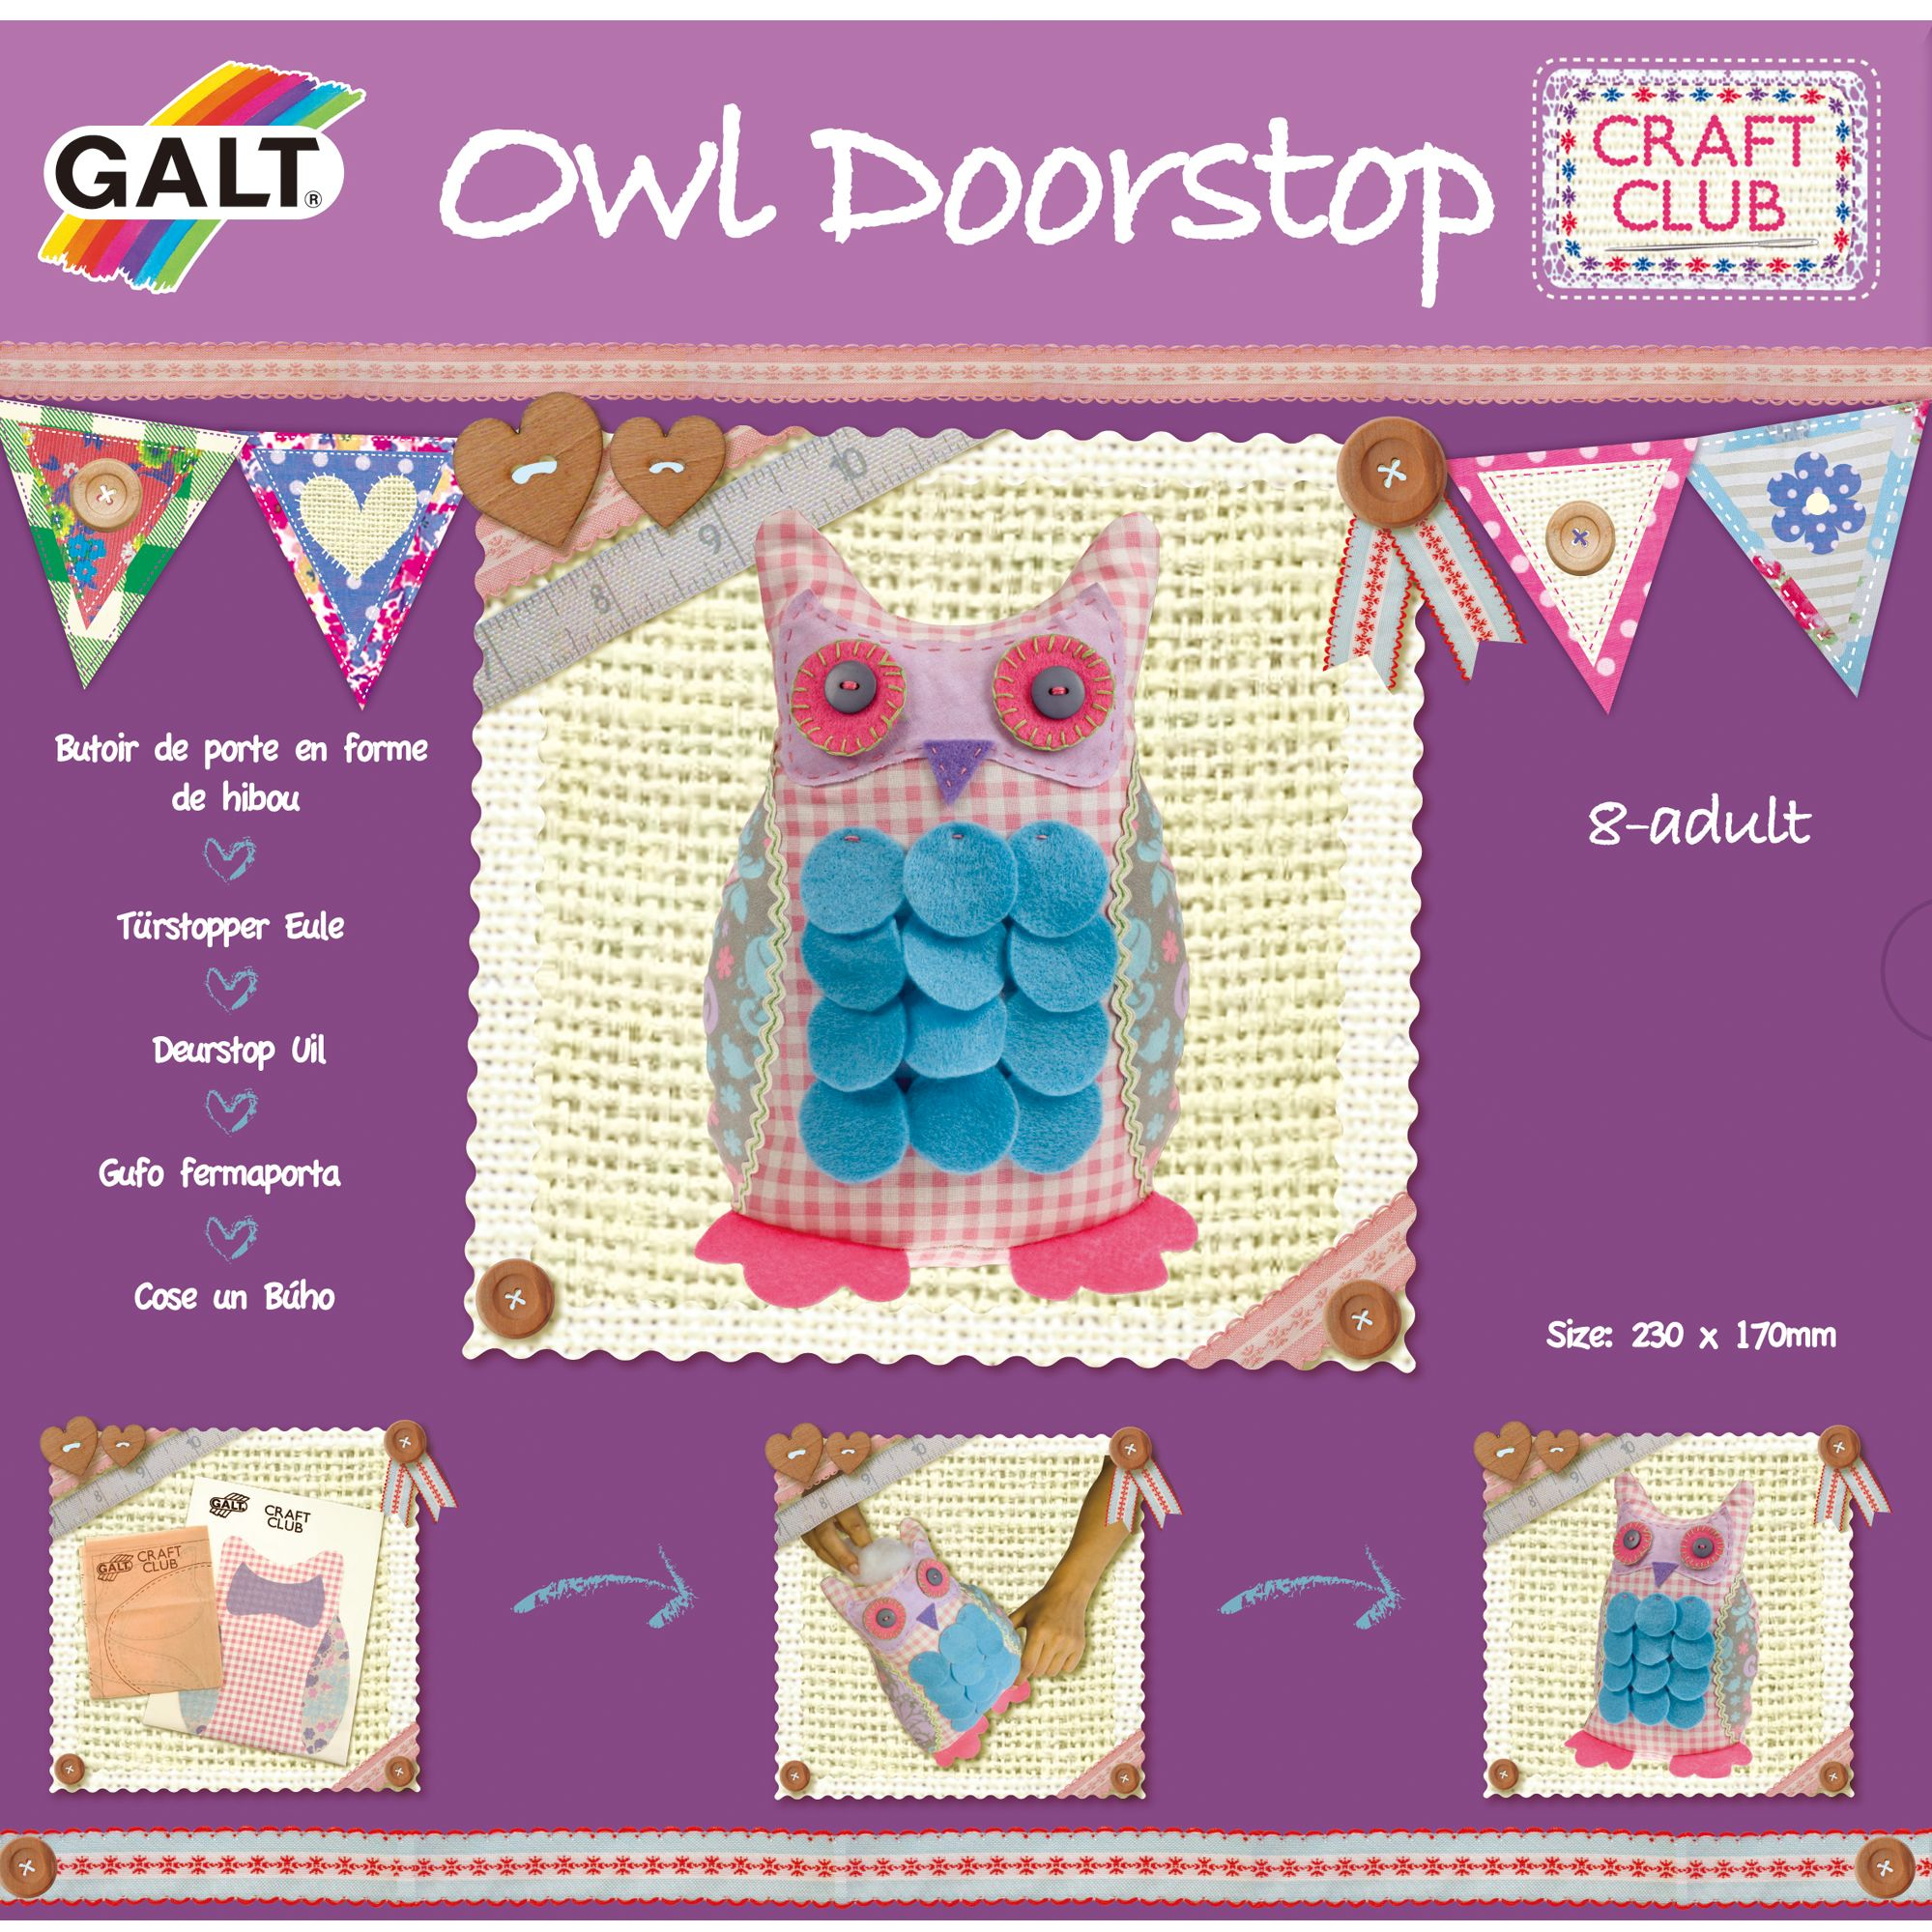 Galt Craft Club Kit, Stitch An Owl Doorstop